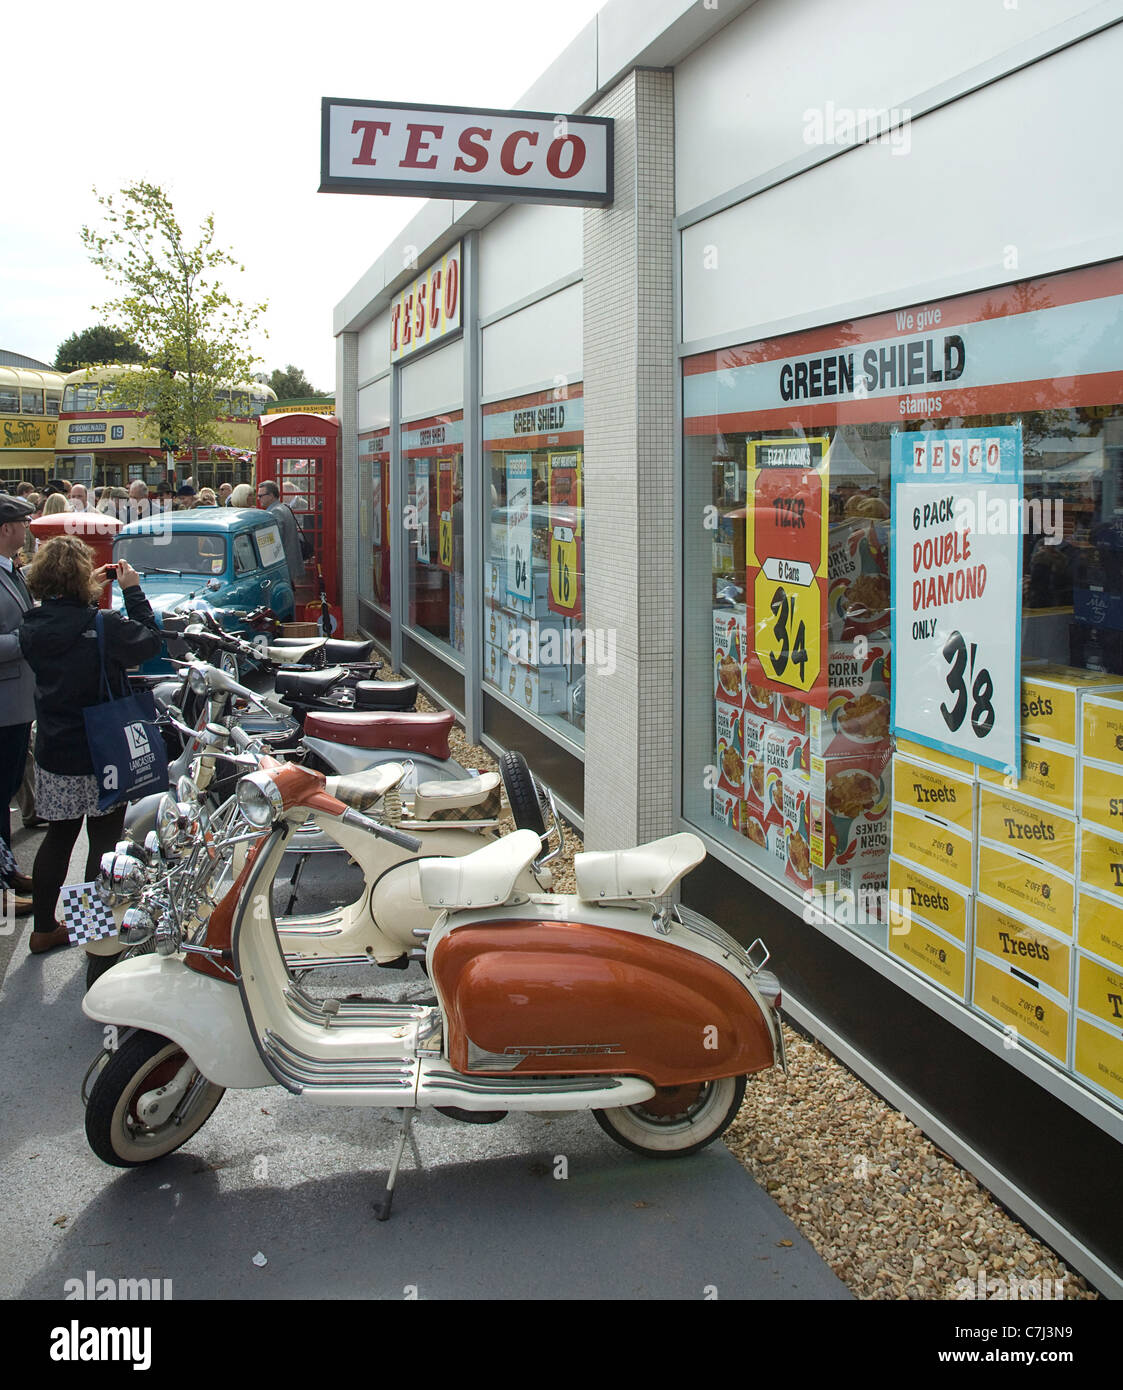 Retro-Tesco-Supermarkt mit Roller beim Goodwood Revival 2011 Stockbild